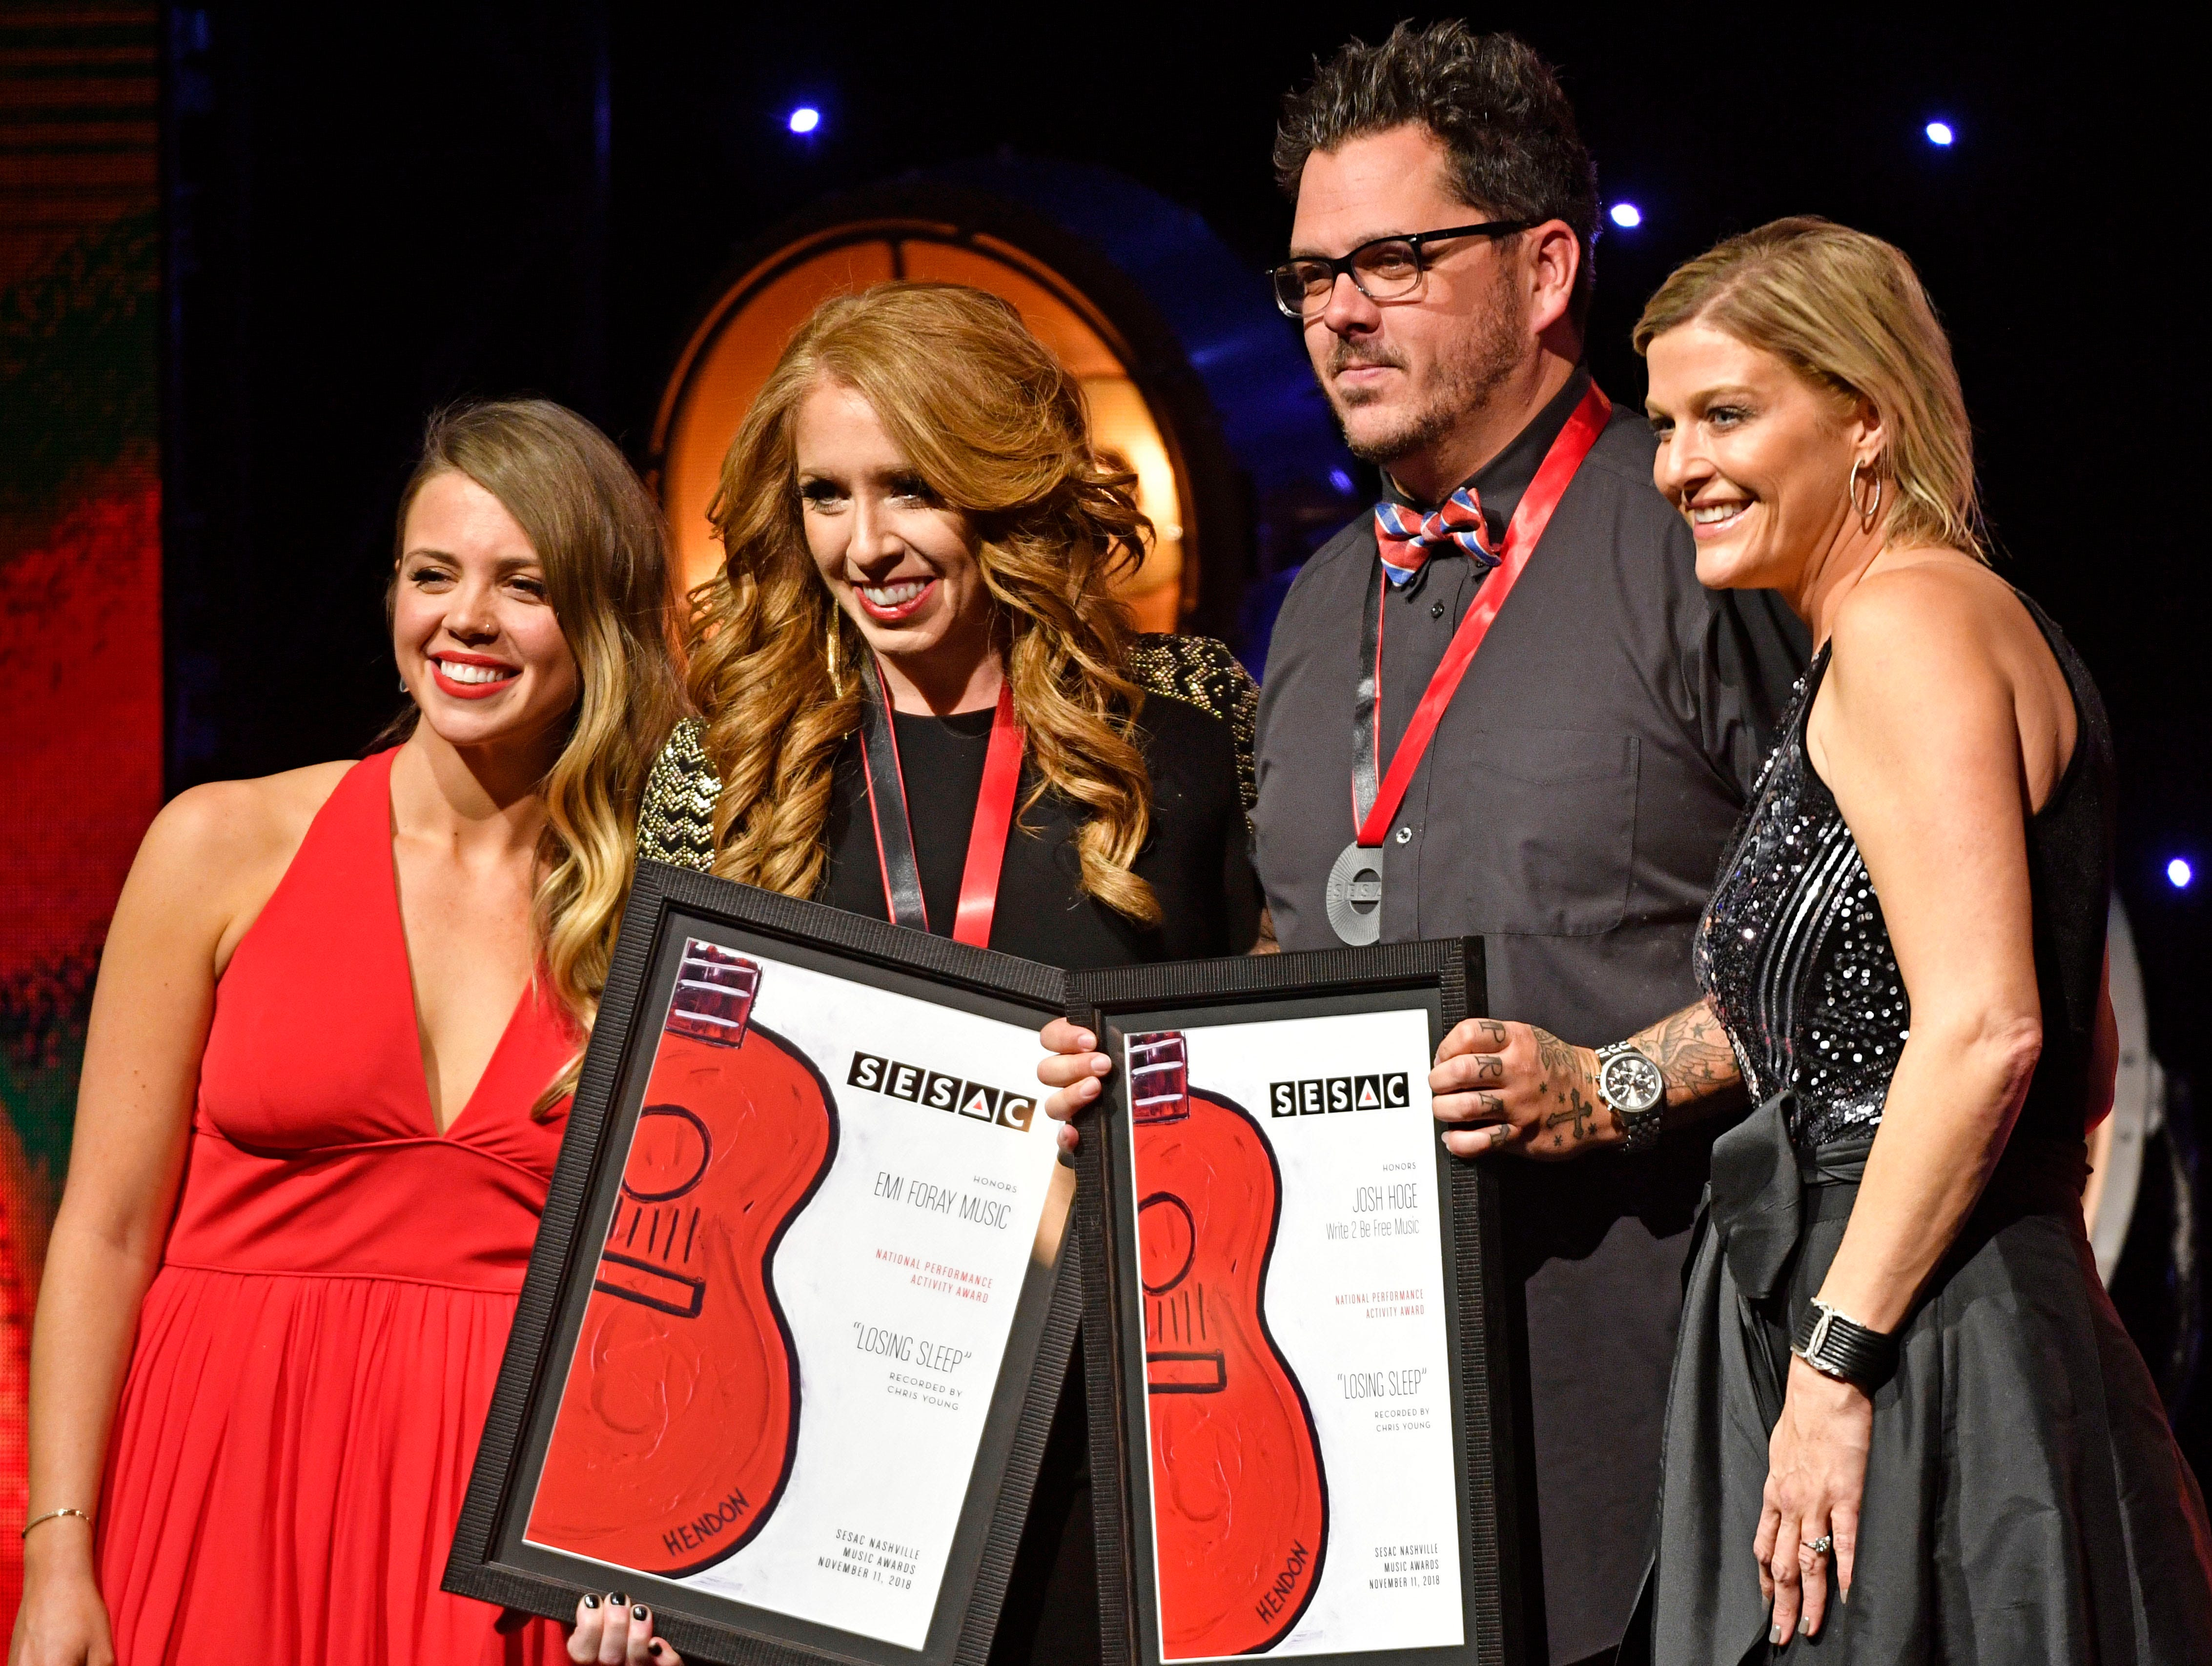 """""""LOSING SLEEP""""written by:Josh Hogepublished by: EMI Foray Music, Write to Be Freerecorded by:Chris Young at the SESAC Nashville Music Awards at the Country Music Hall of Fame and Museum Sunday Nov. 11, 2018, in Nashville, Tenn."""